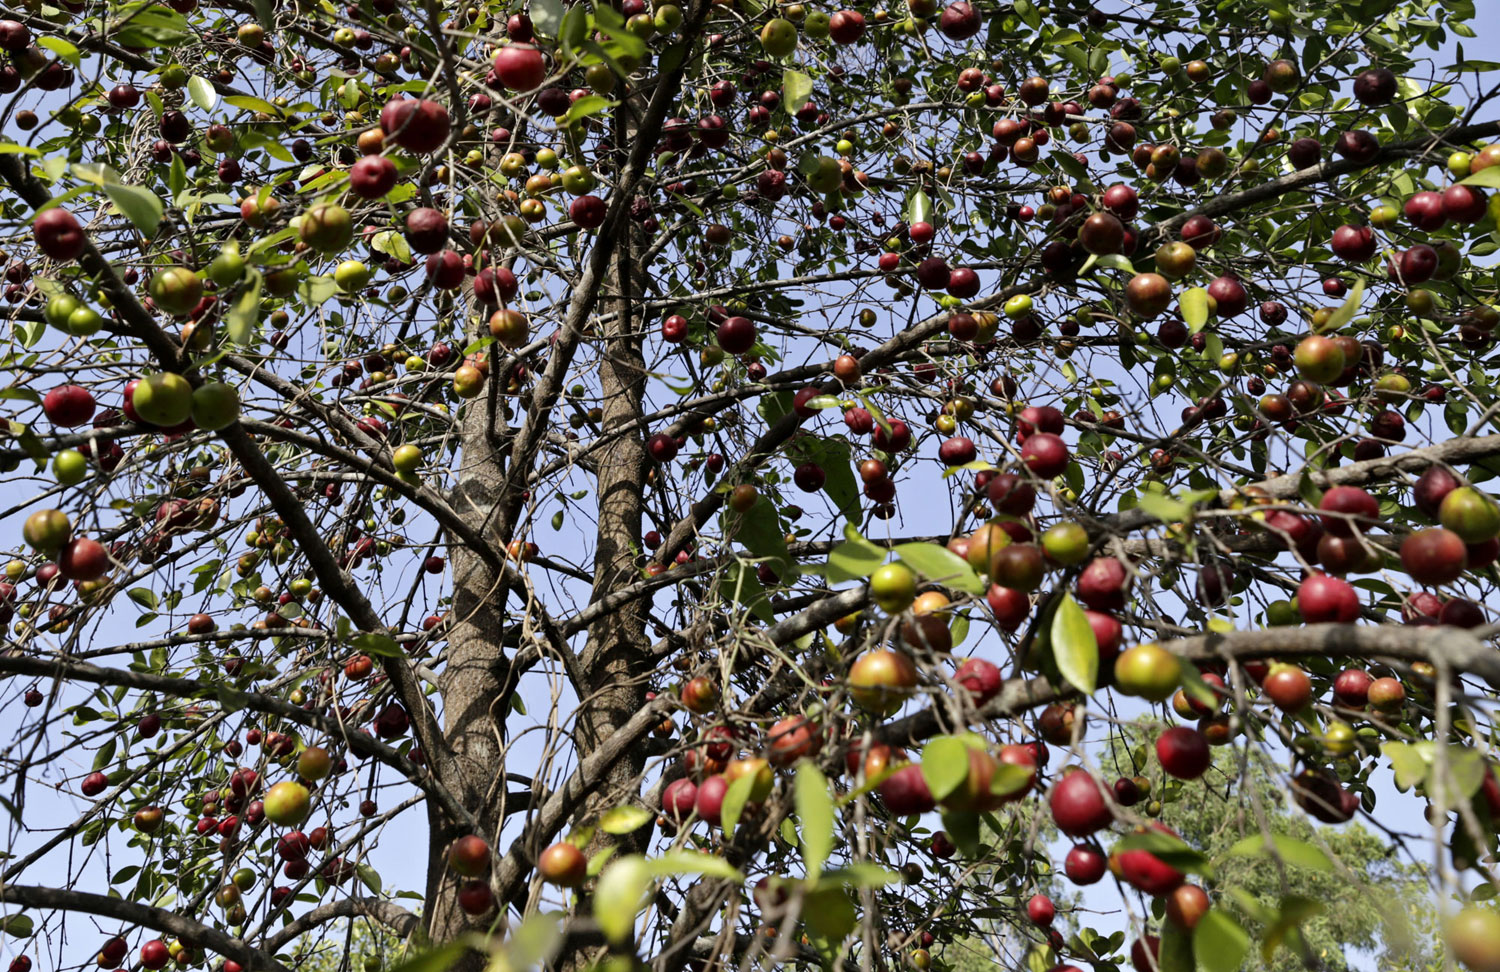 According to a few local groups, this is because till 2010, close to 85 per cent of the fruit used to go waste every year